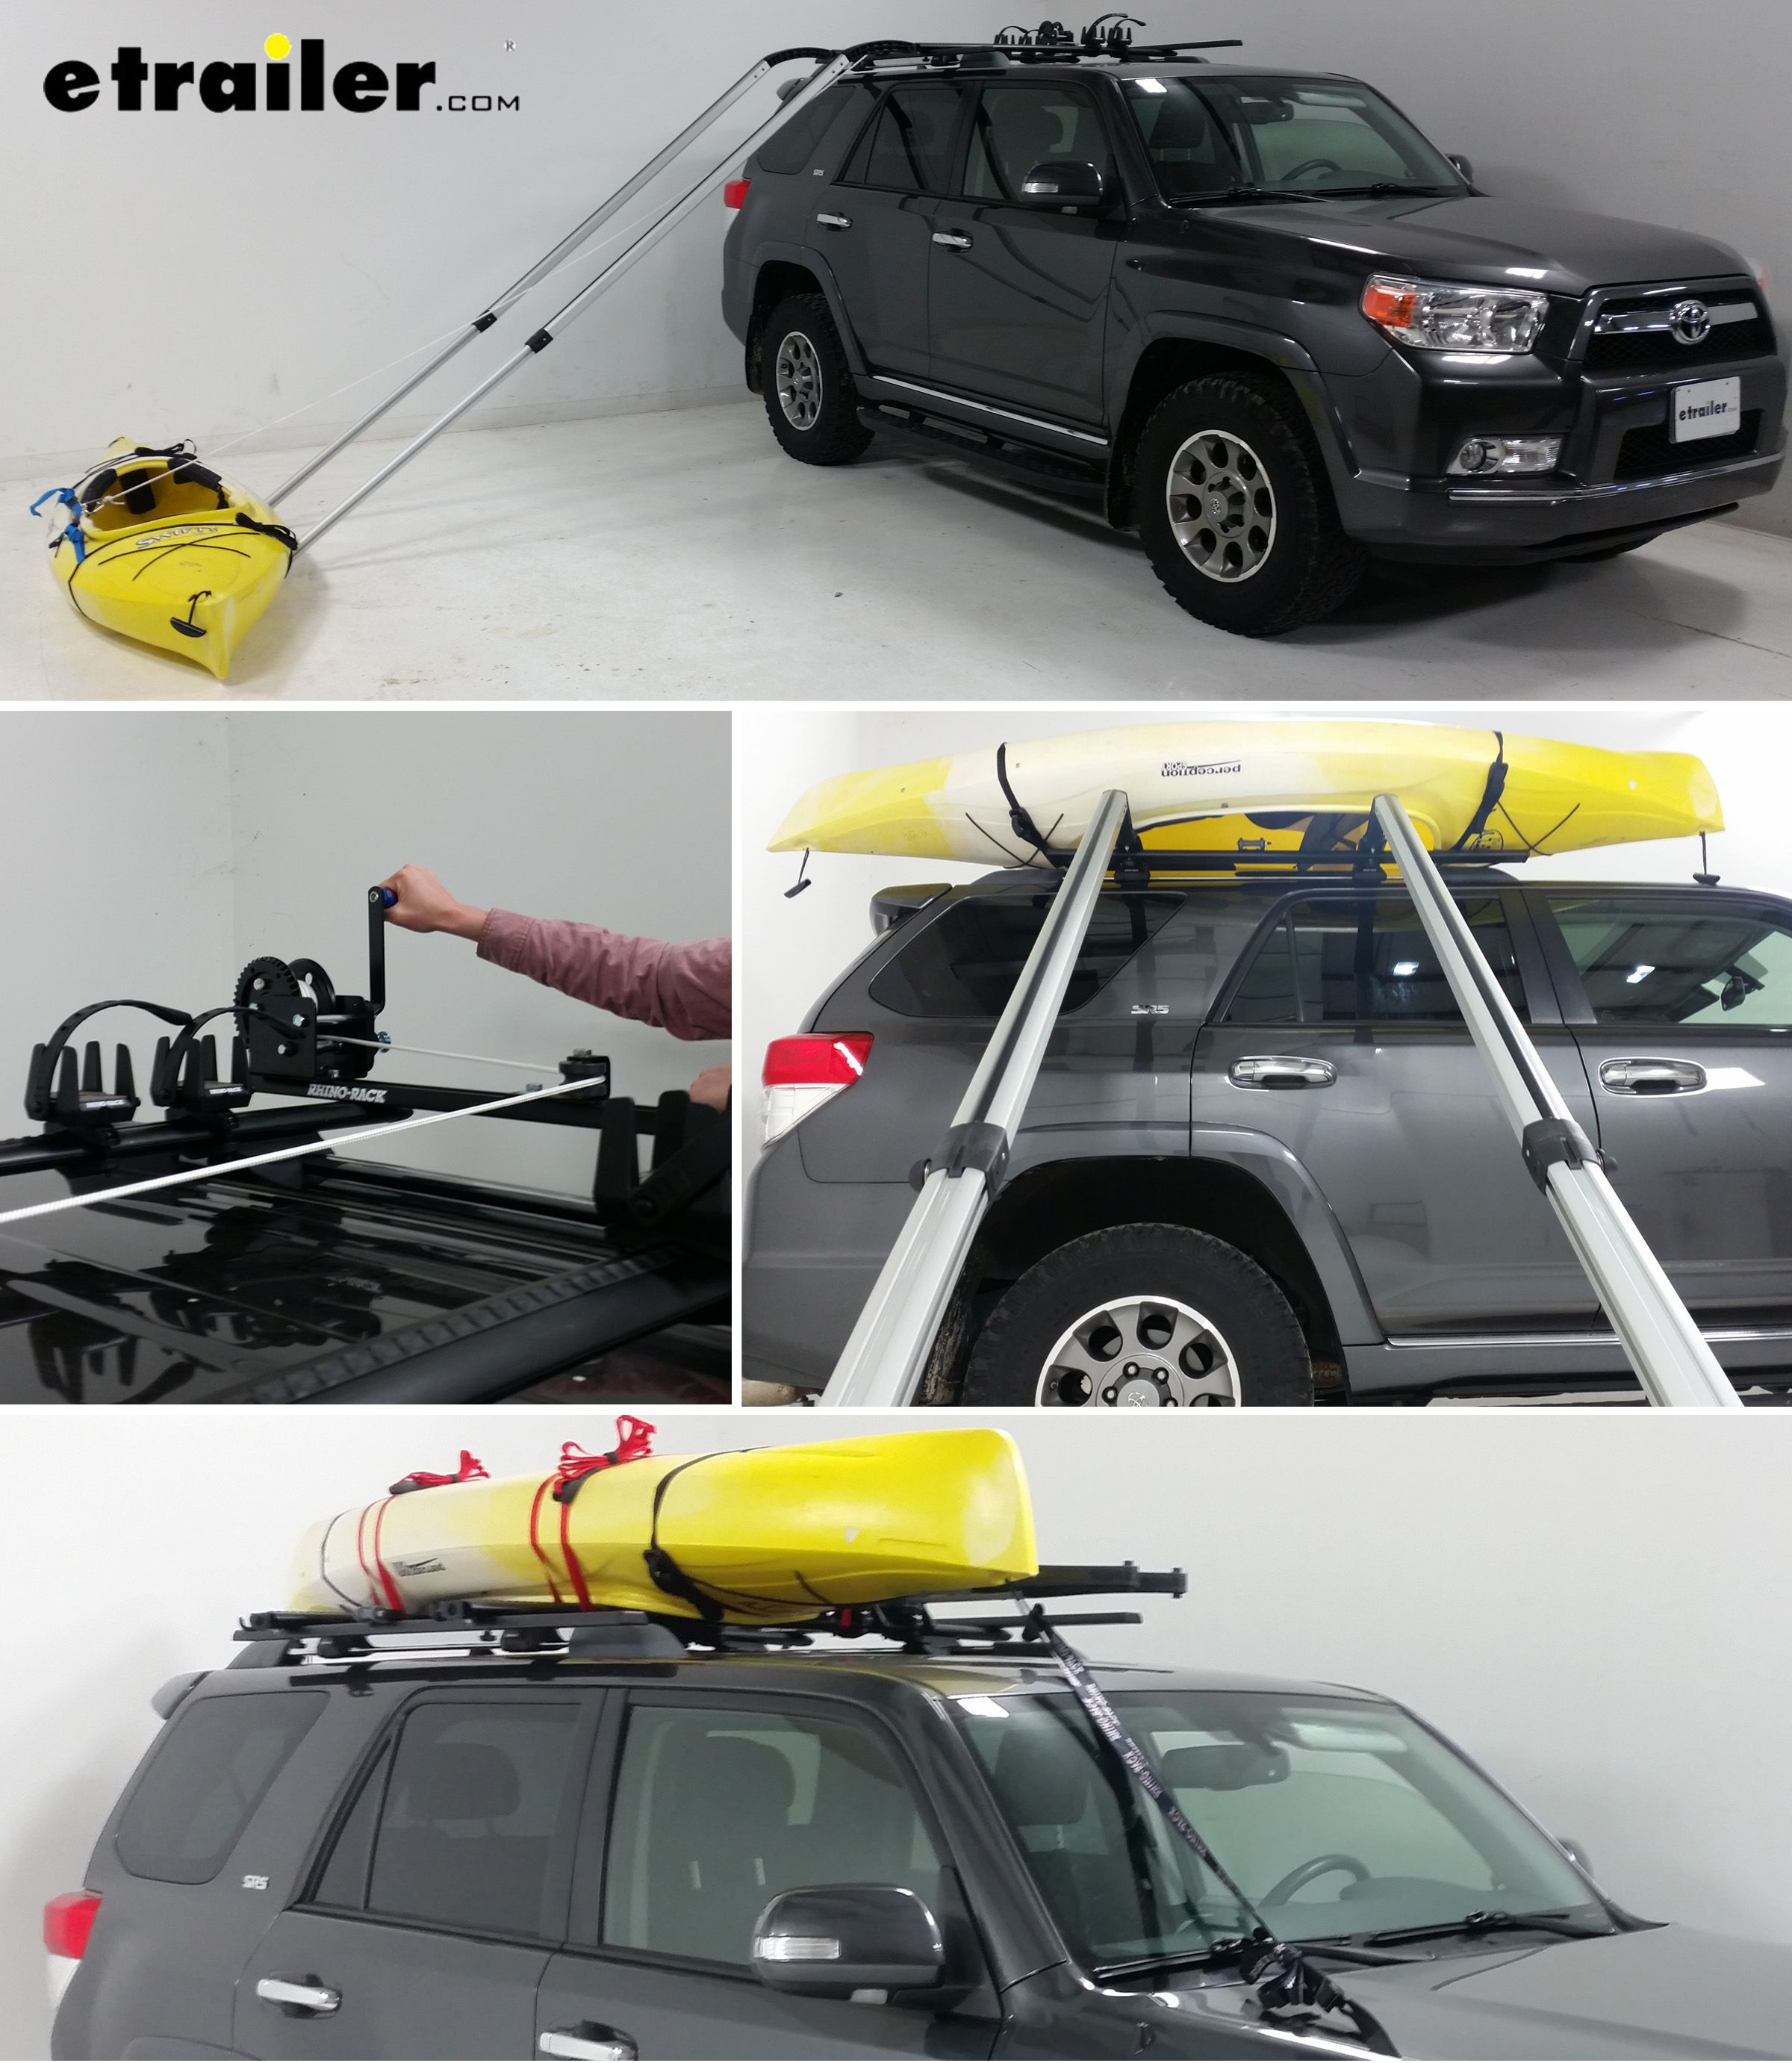 rhino safely rack j car made kayak securely universal to up mount on board are style these the and carrier pin roof transport carriers paddle vehicle fixed stand